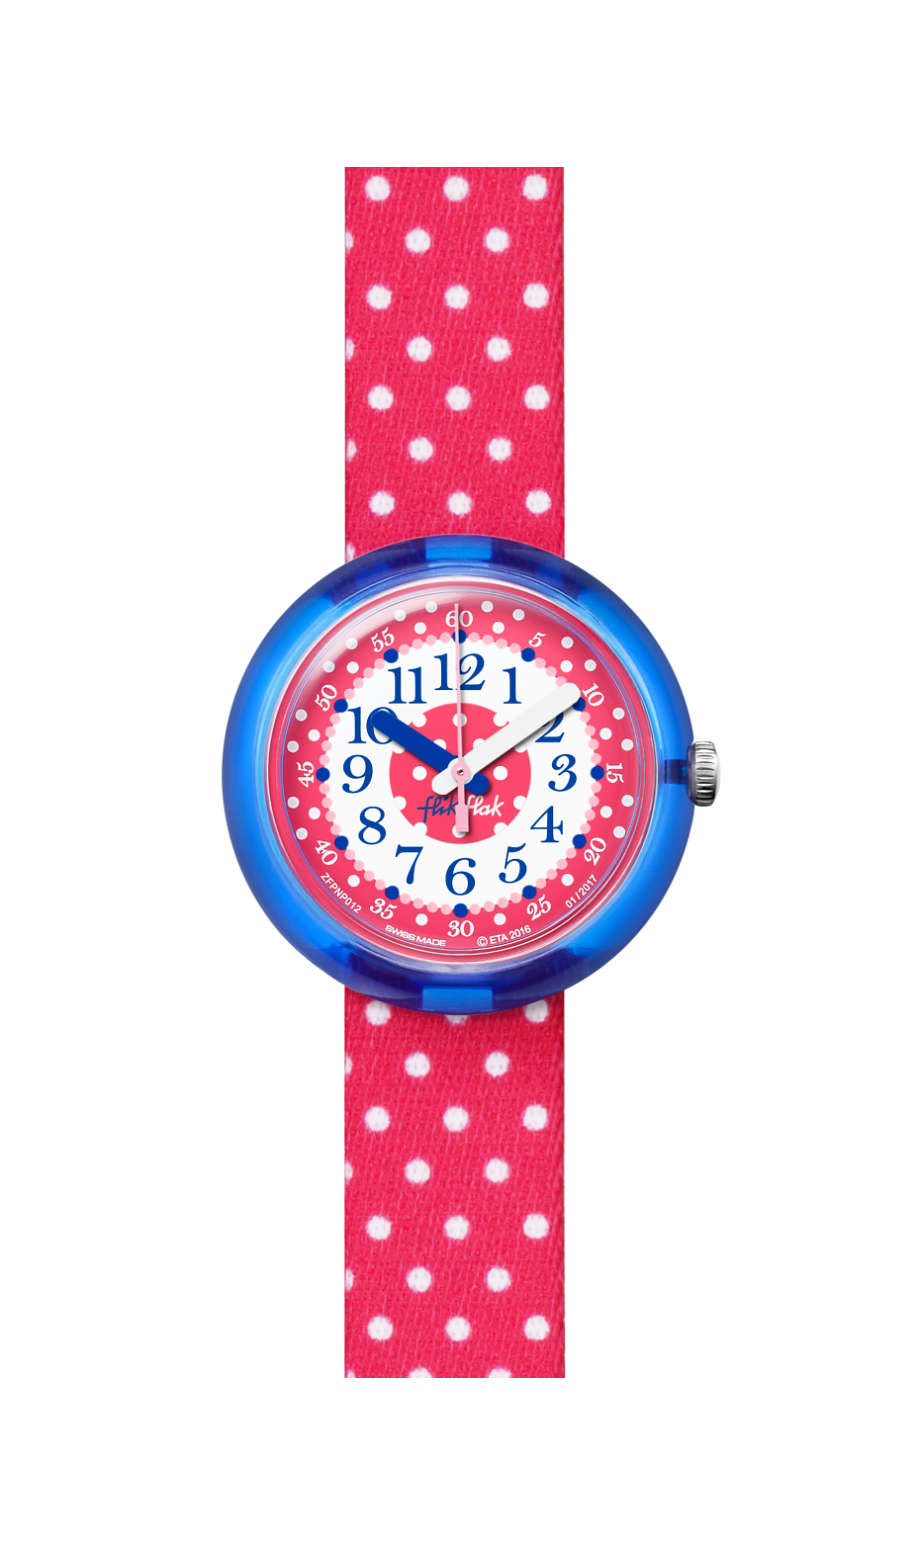 Swatch - PINK CRUMBLE - 1